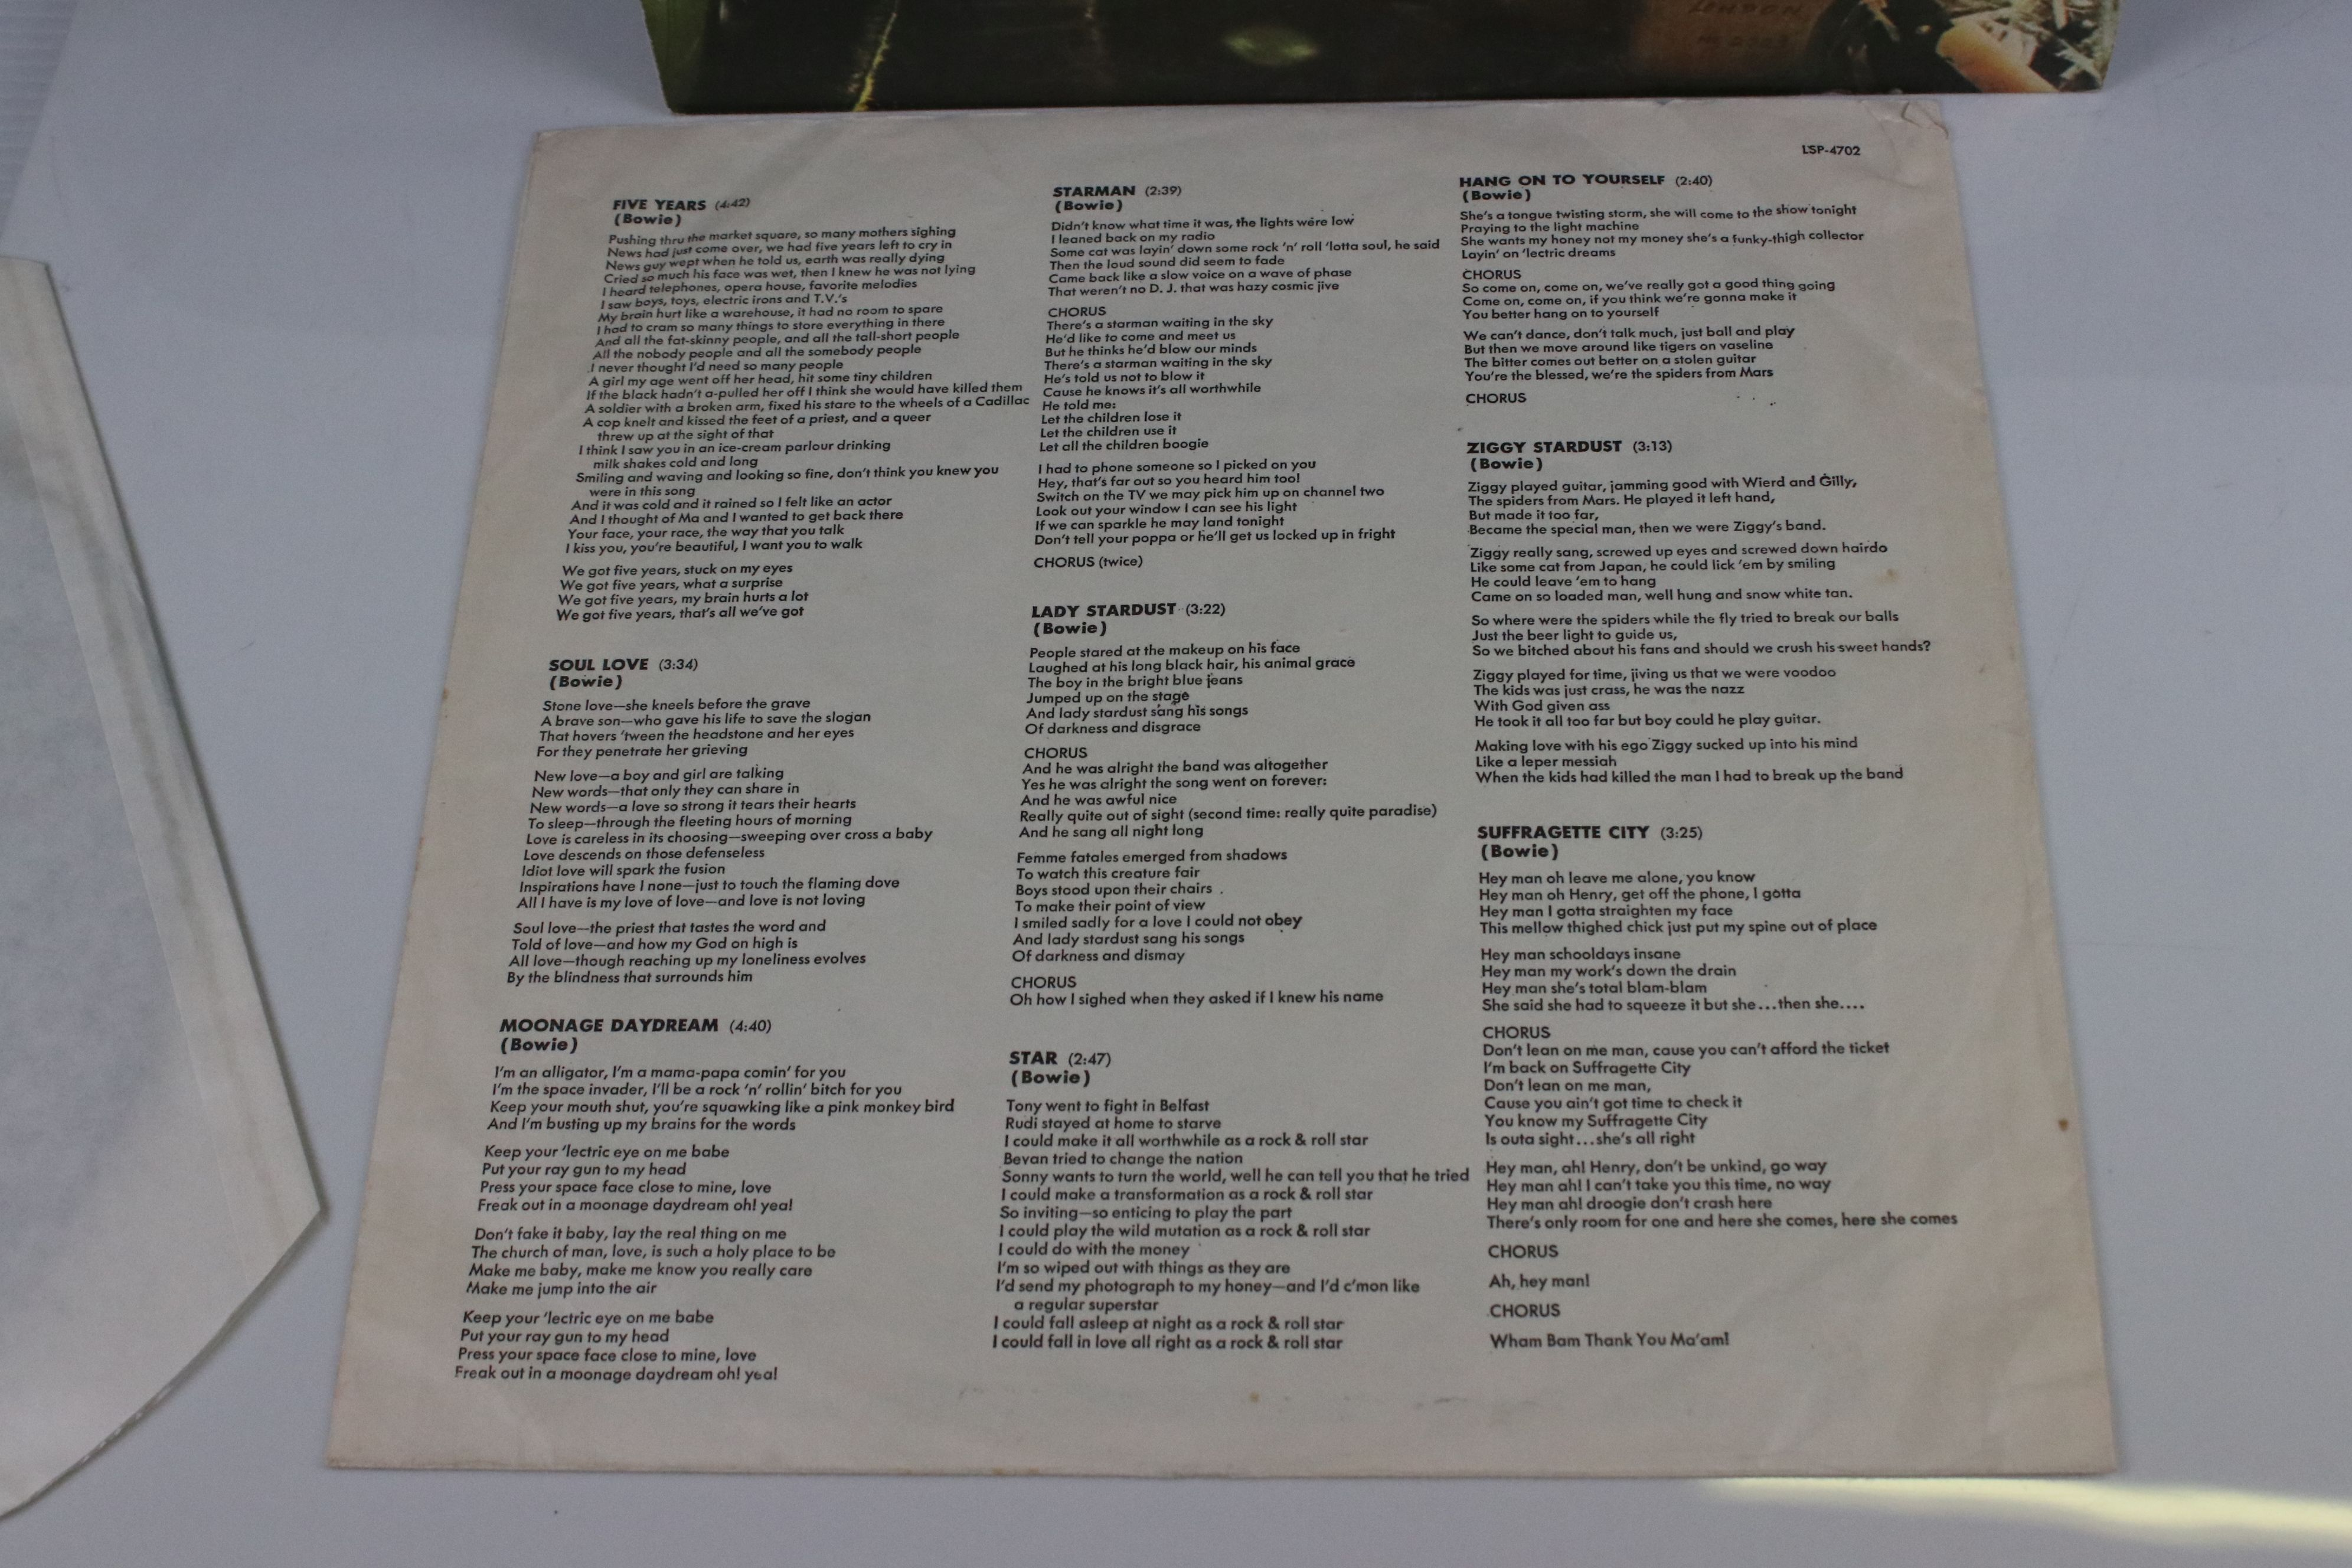 Vinyl - David Bowie The Rise and Fall of Ziggy Stardust LP on RCA8287, shiny orange RCA label, - Image 5 of 7